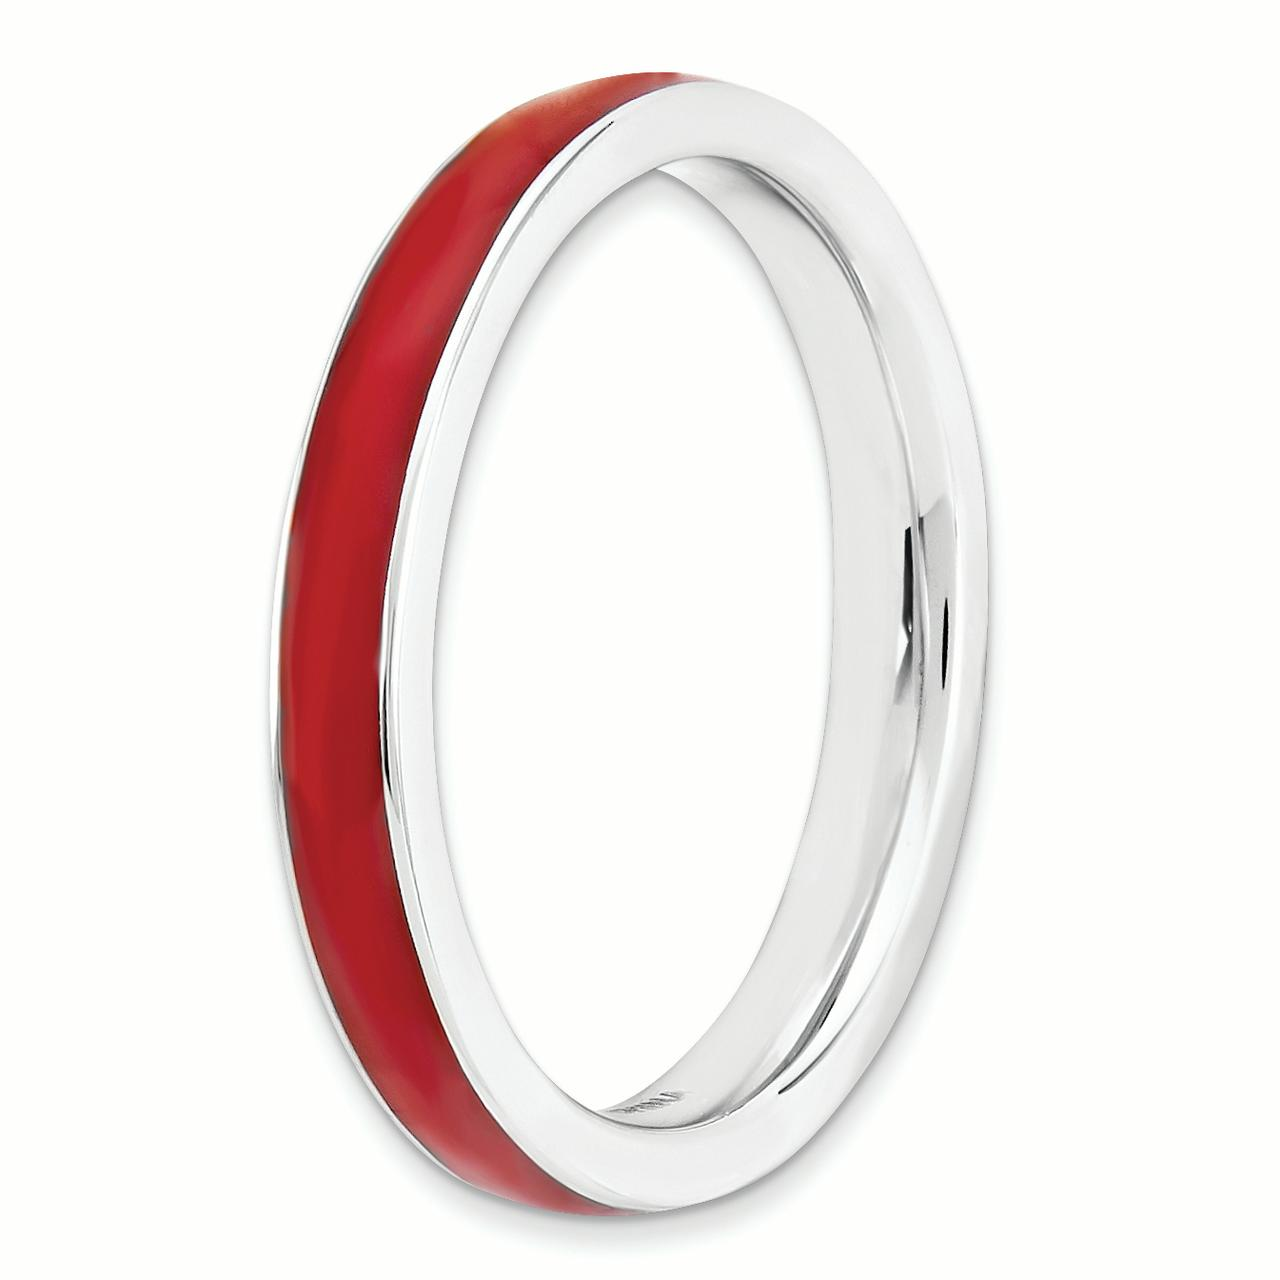 Sterling Silver Stackable Expressions Red Enameled 3.25mm Ring Size 6 - image 1 de 3